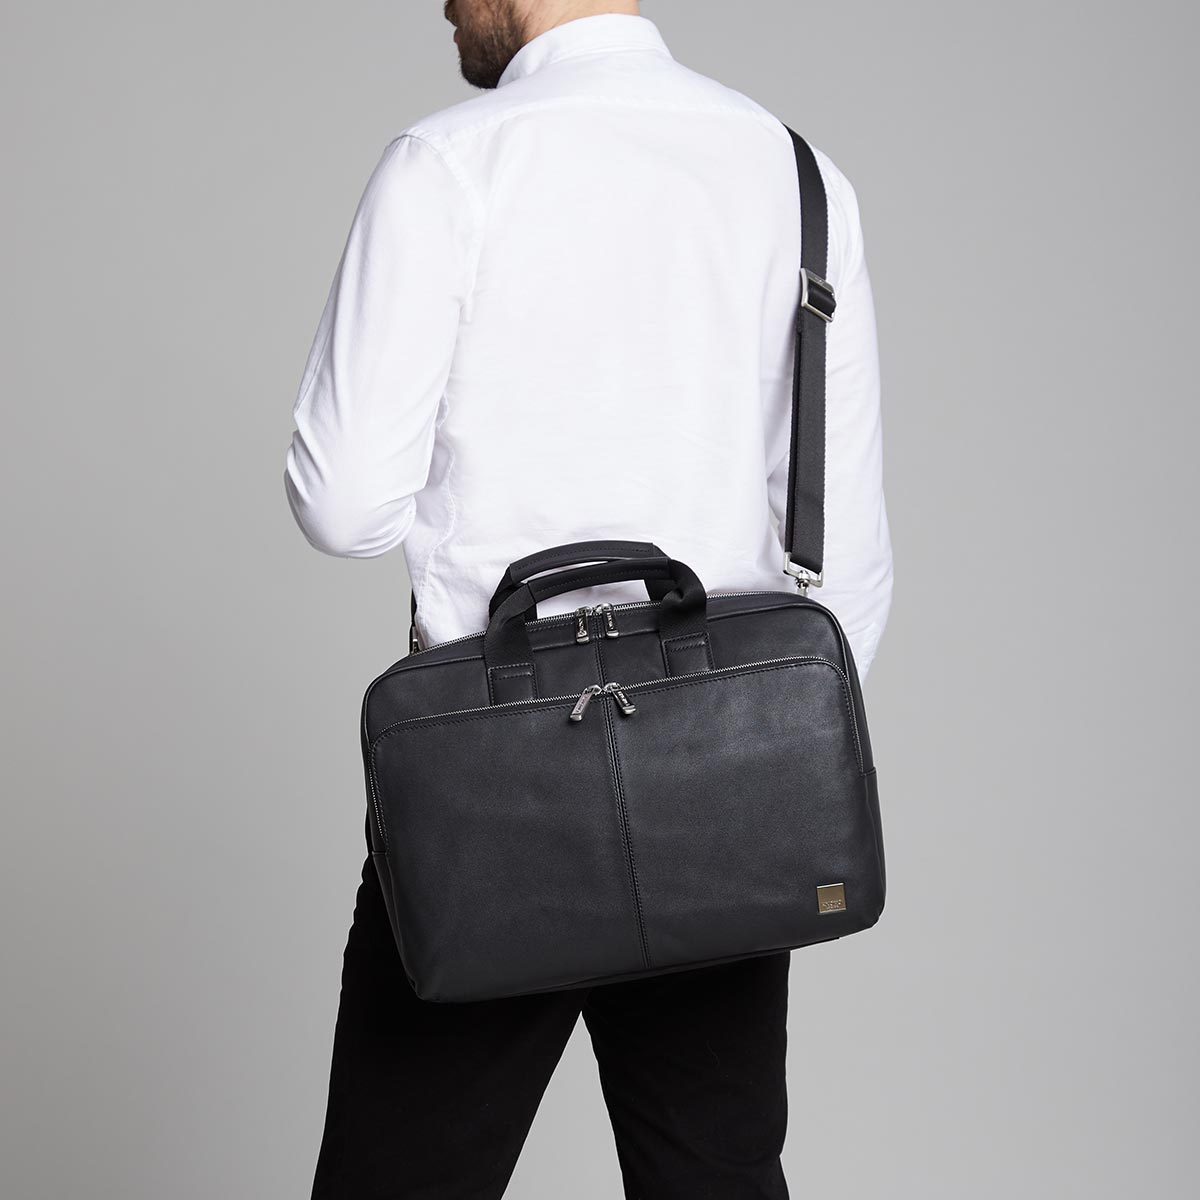 "KNOMO Newbury Laptop Briefcase Male Model Wearing Over Shoulder 15"" -  Black 